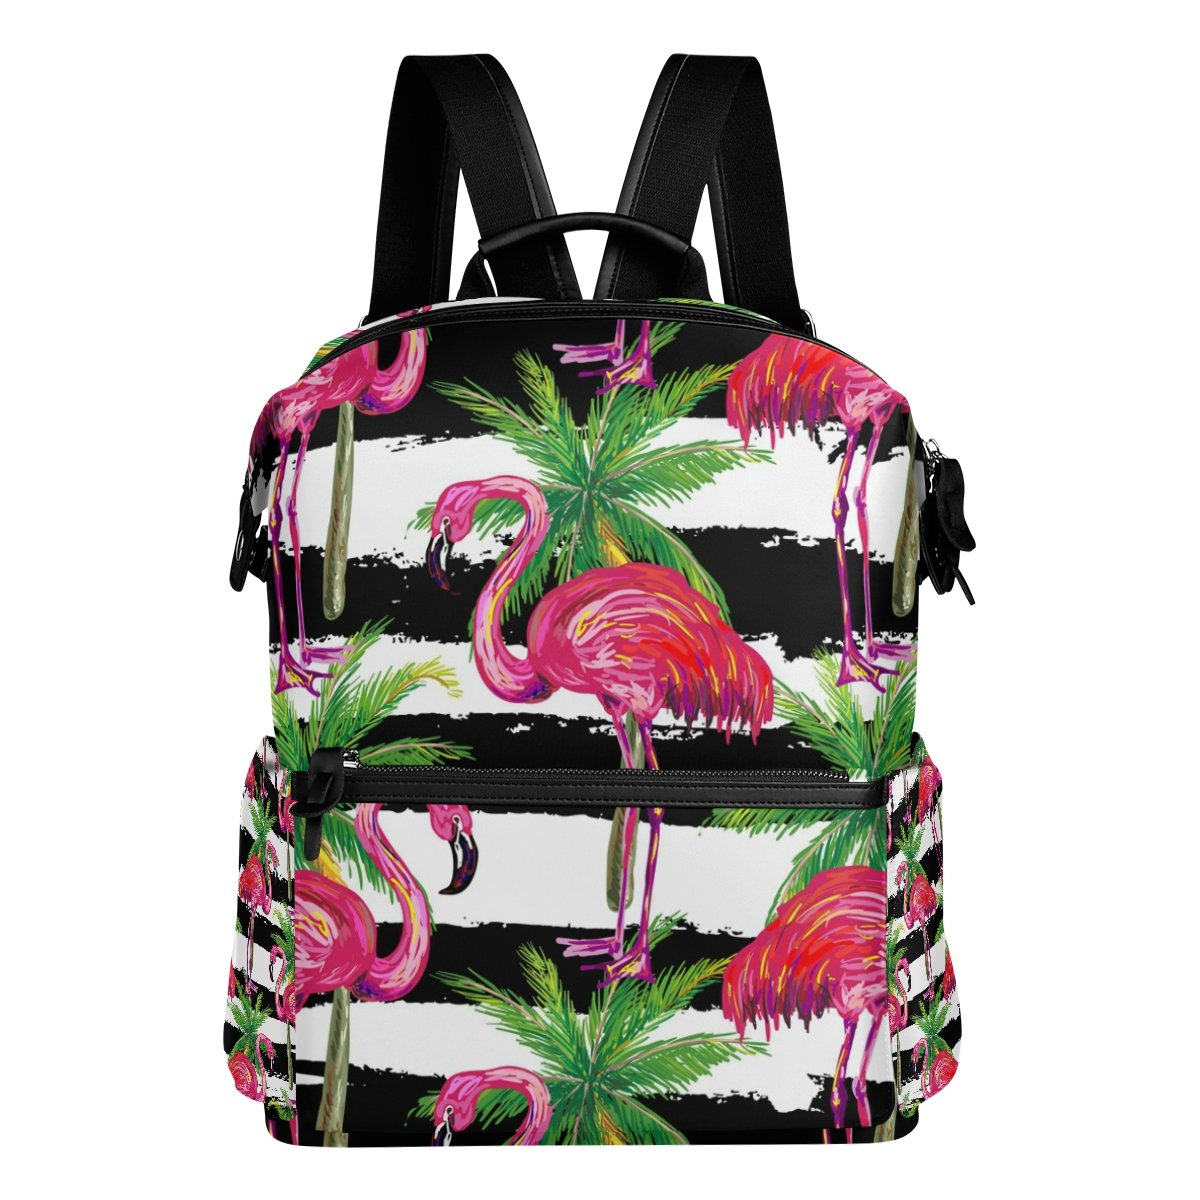 LORVIES Exotic Pink Flamingo Birds And Palm Trees School Rucksack Travel Backpack